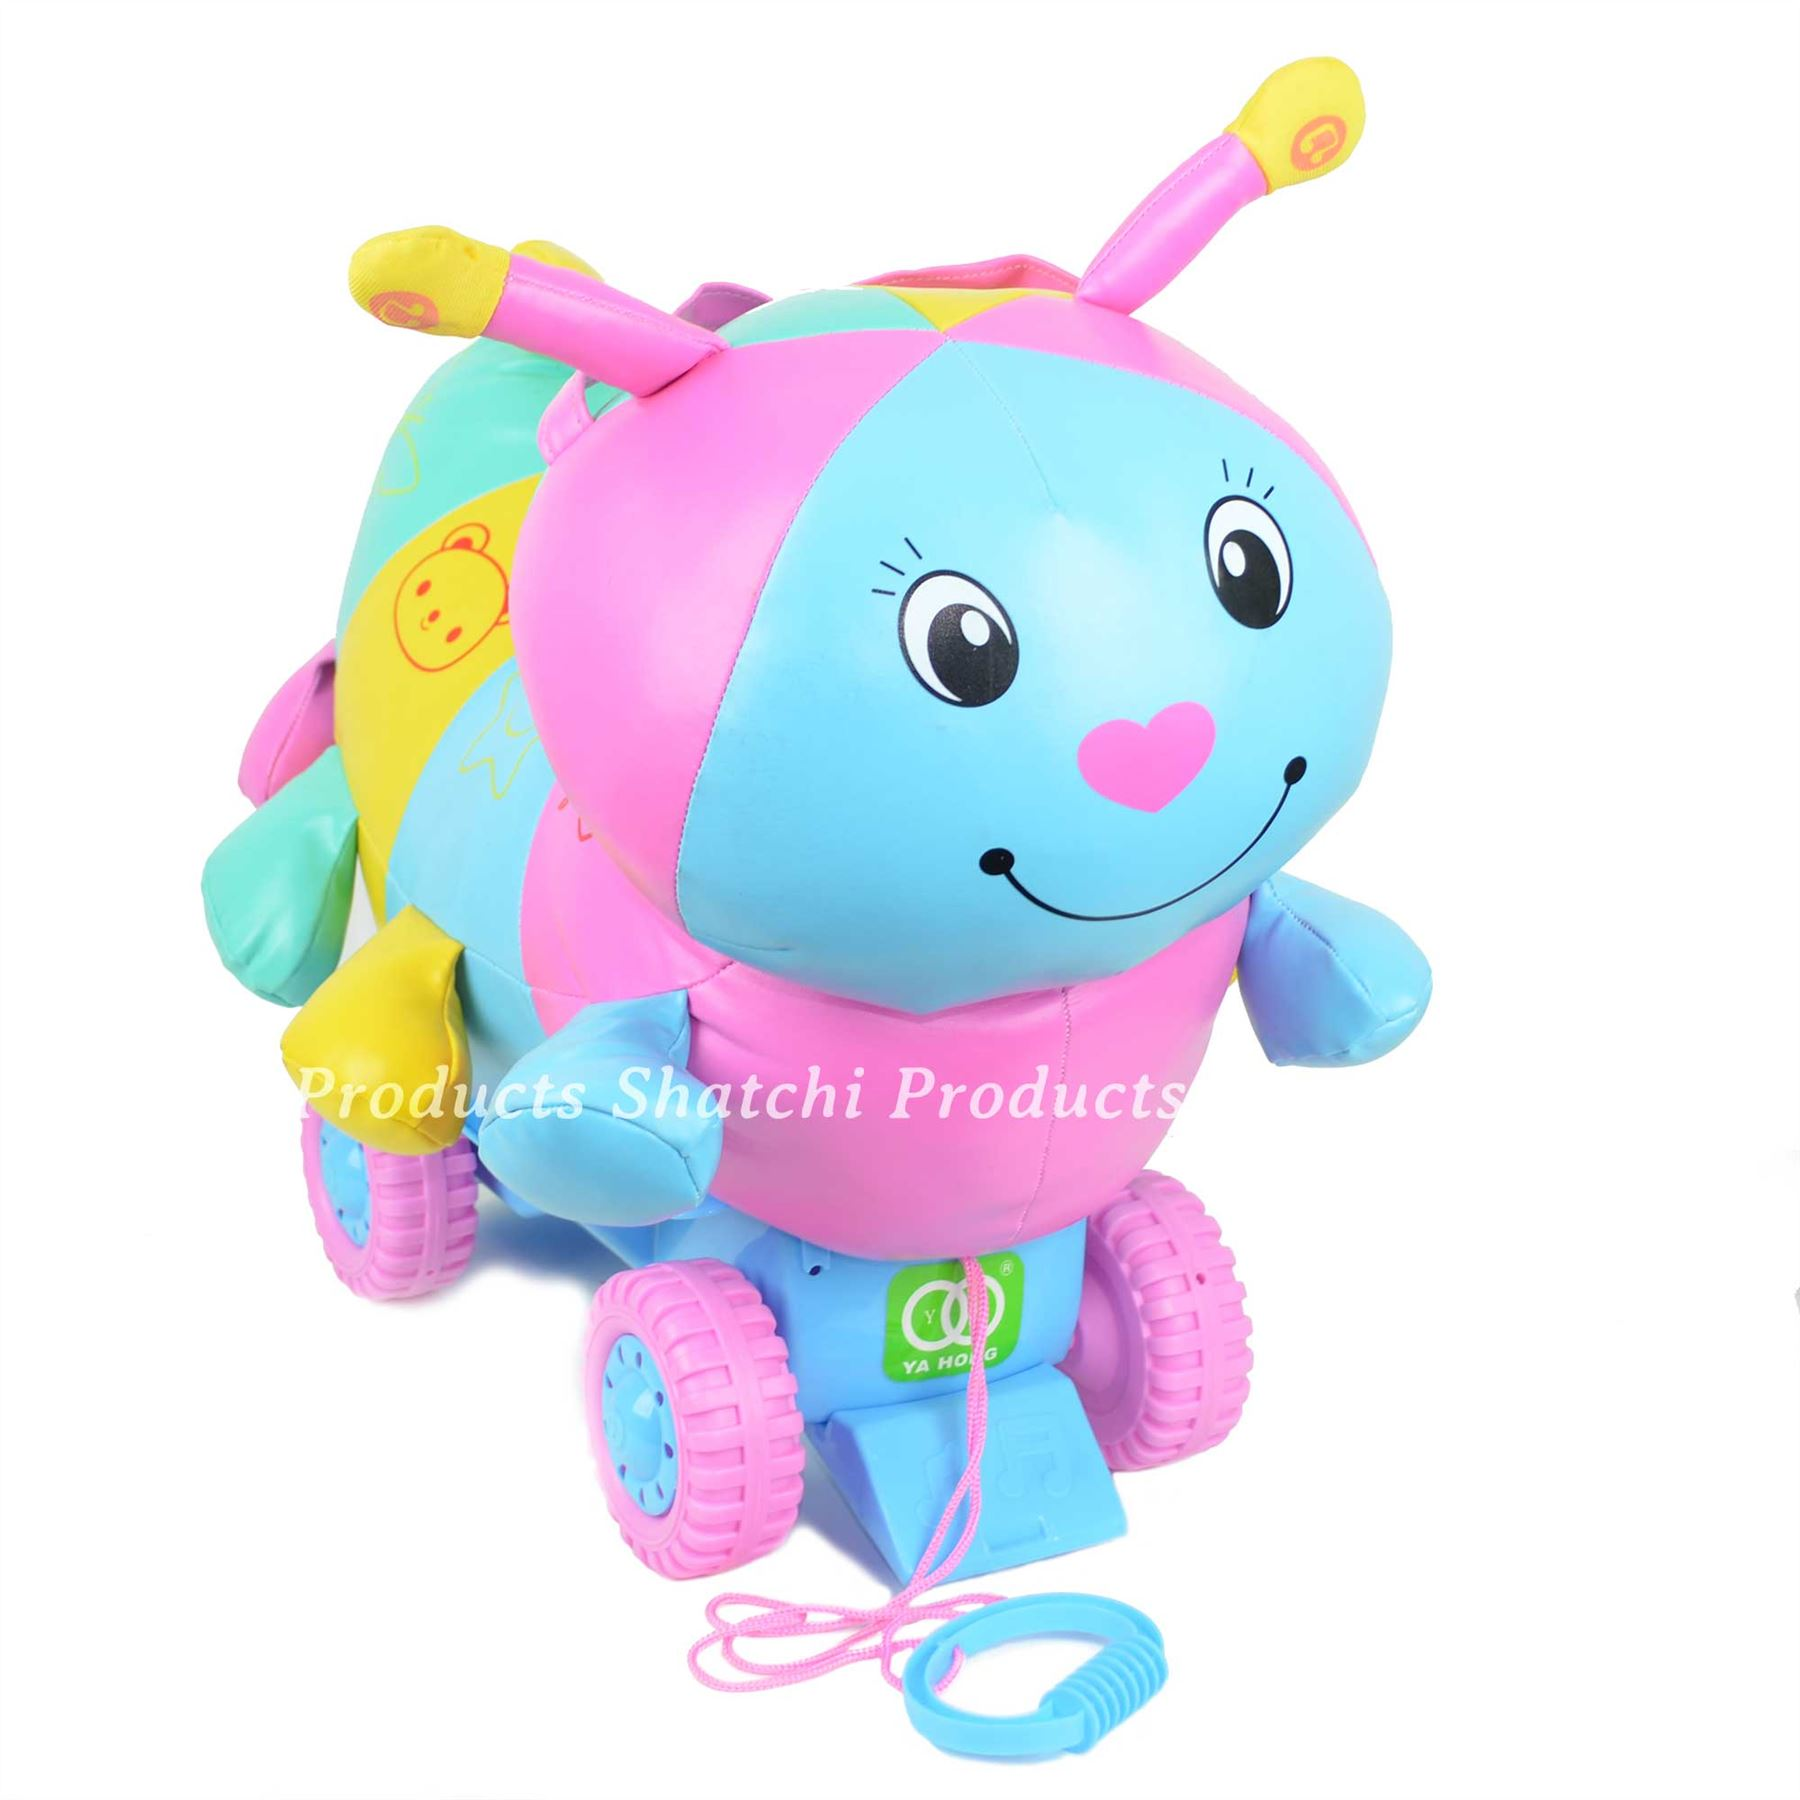 Ride on Toys Baby Ride Toys Xmas Christmas Kids Gifts Birthday